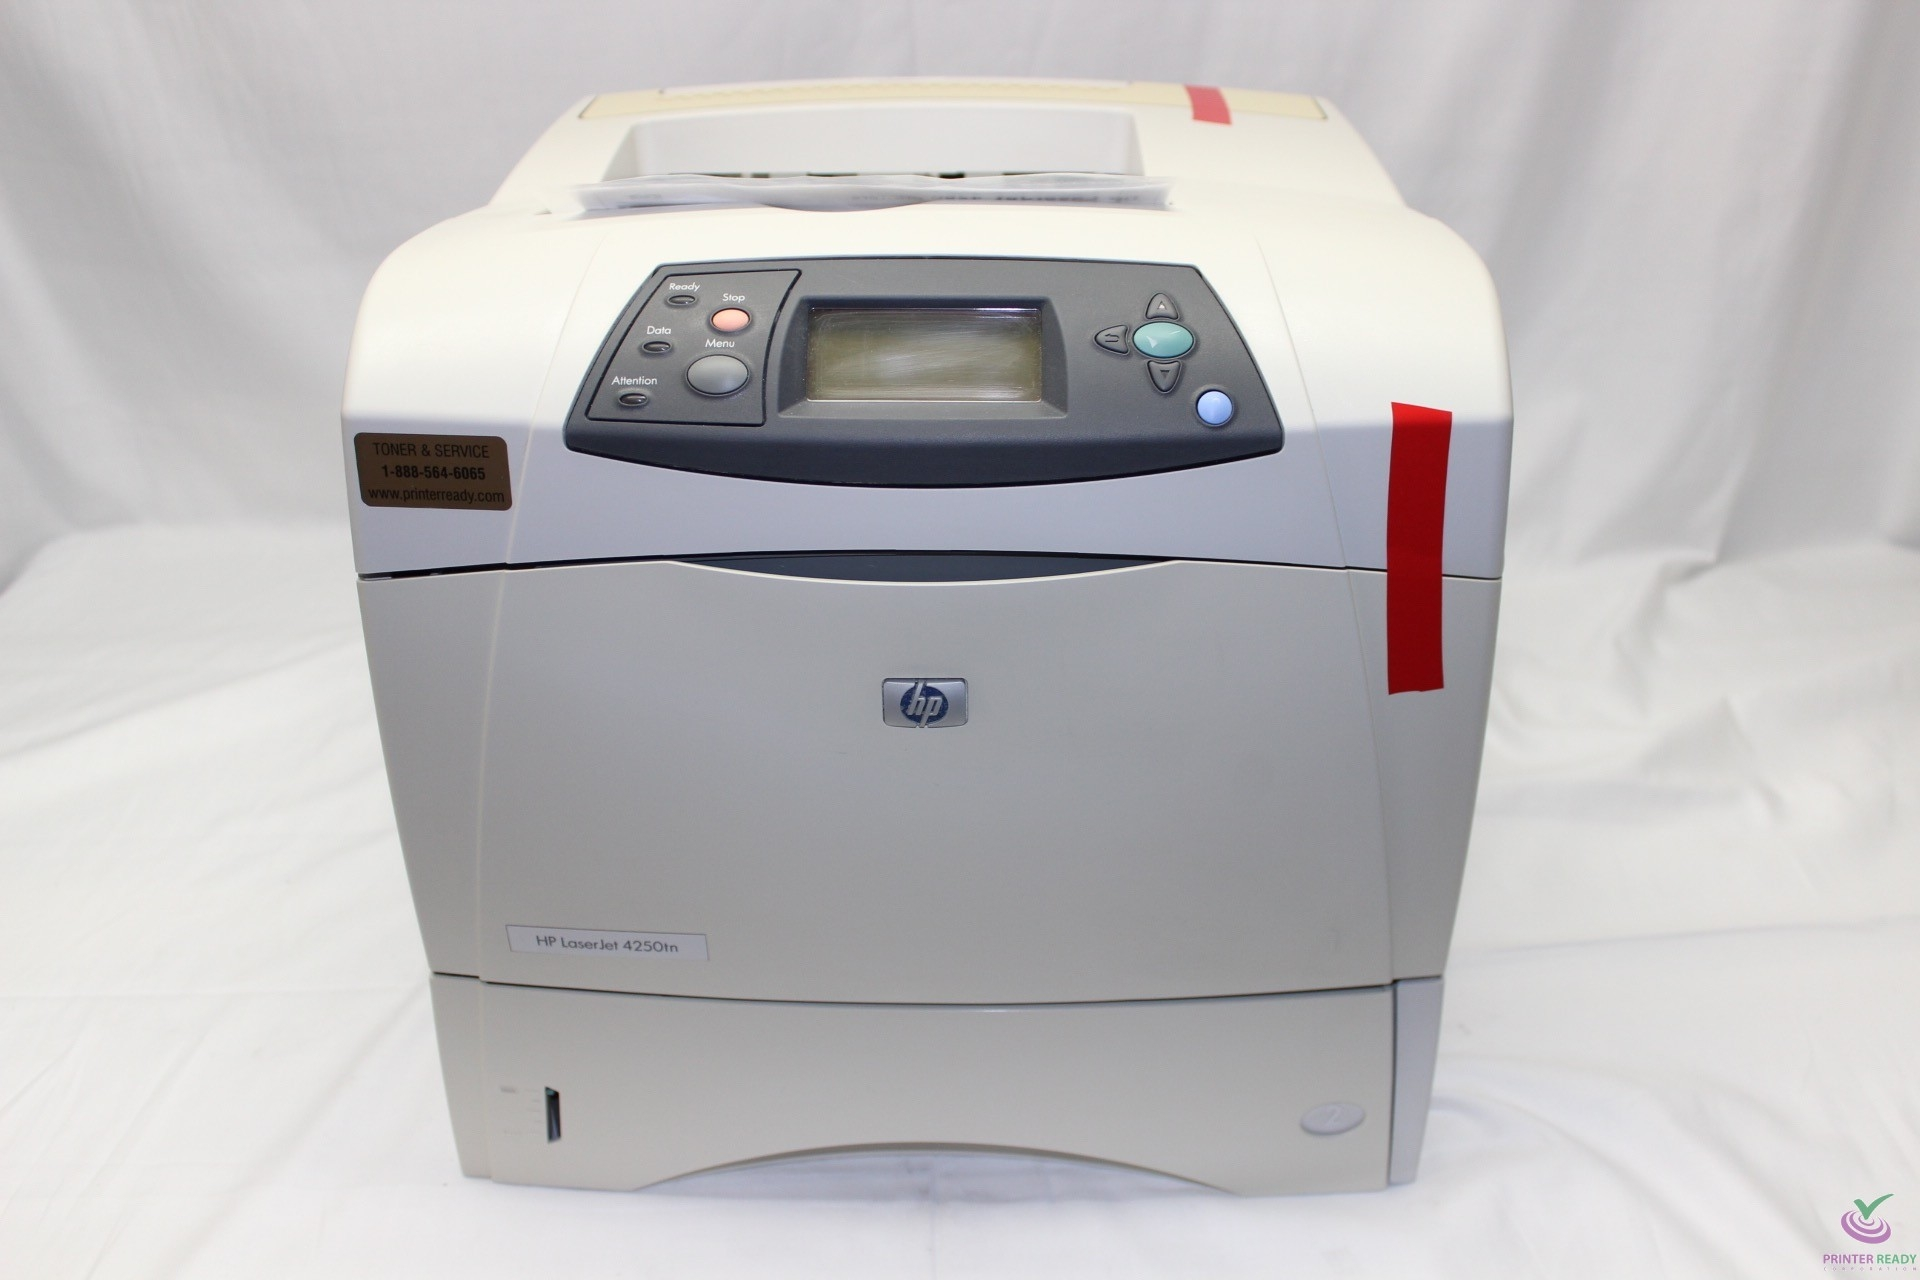 Details about Certified Refurbished HP LaserJet 4250N 4250 Q5401A Laser  Printer with Three Mon